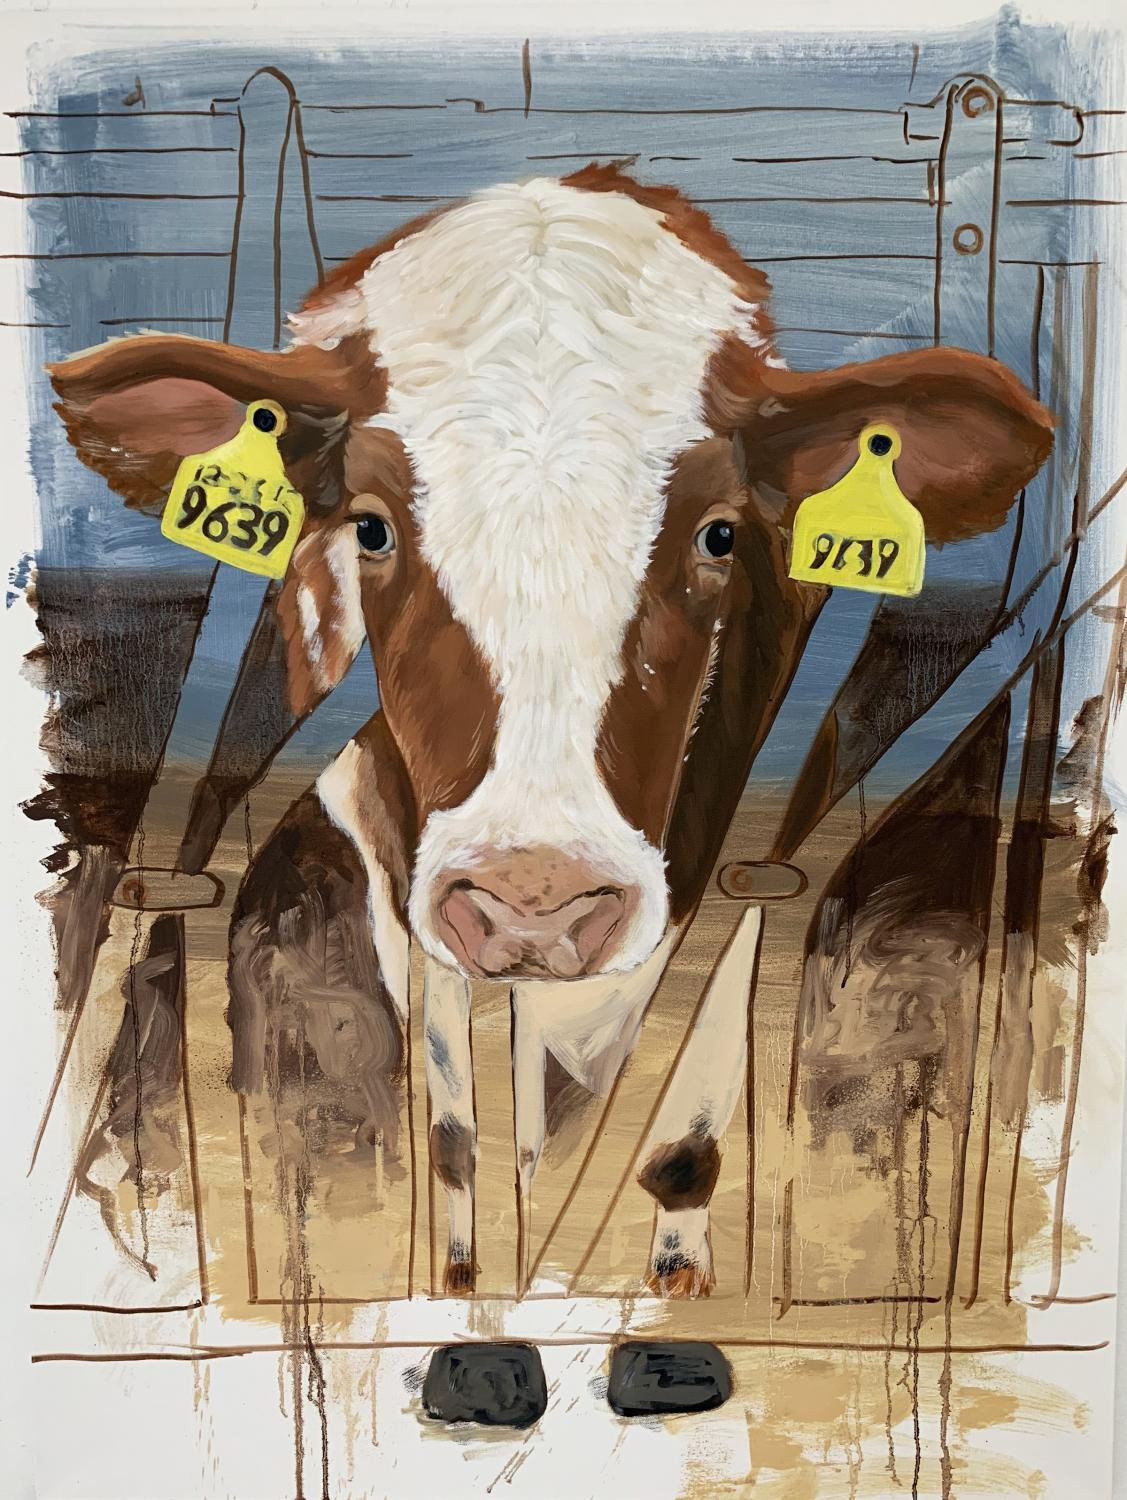 Painting of a cow with tagged ears on a factory farm. It sticks its head forward between bars that keep it from moving.